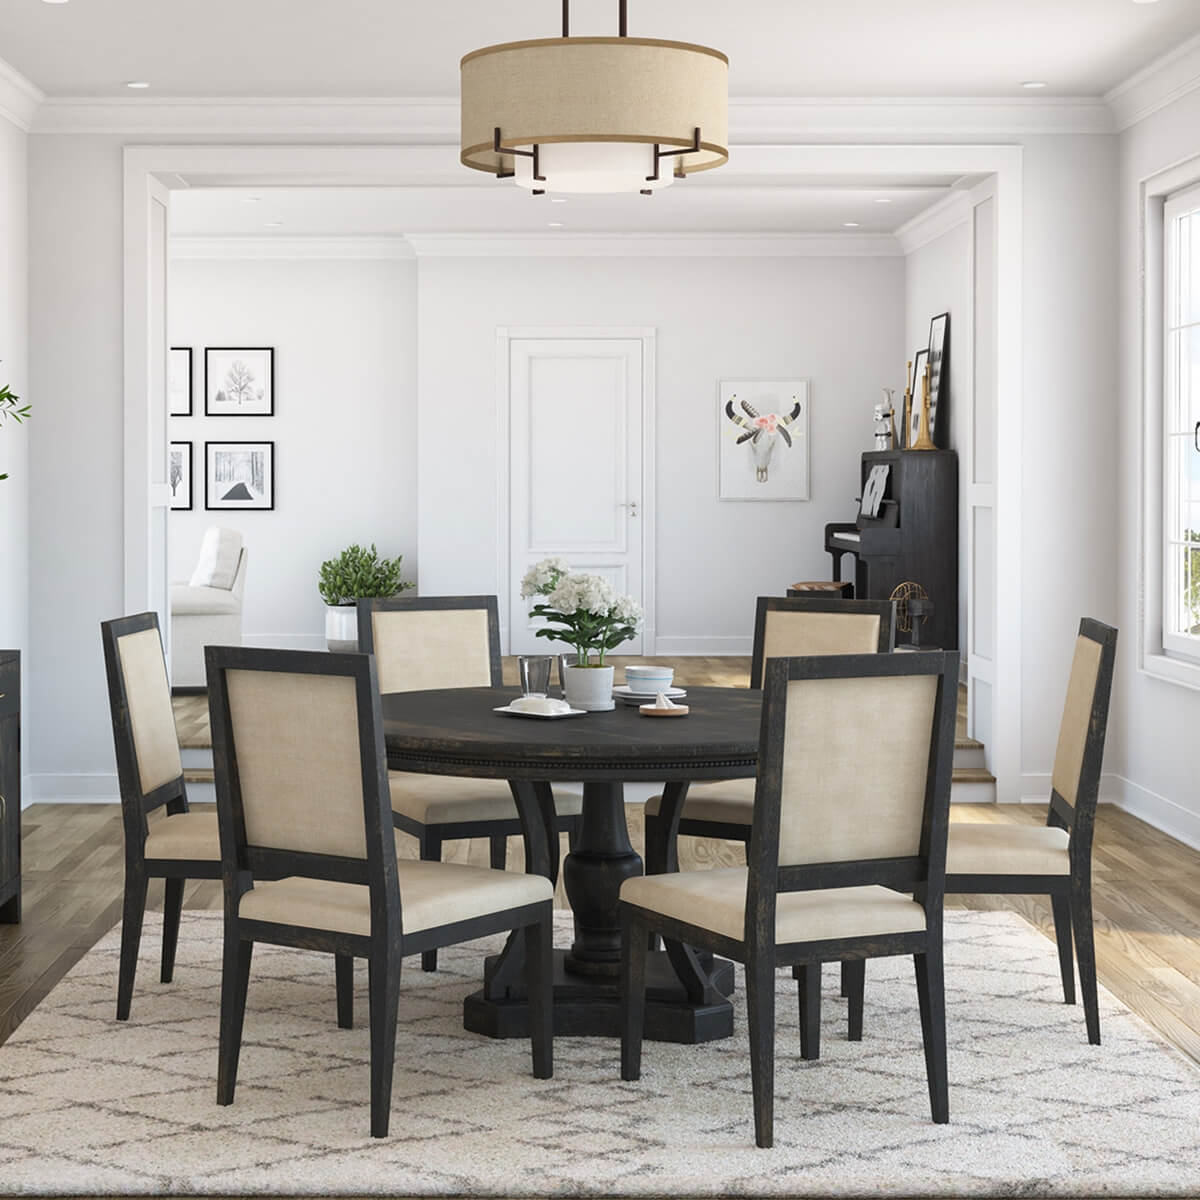 Abingdon Rustic Solid Wood Round Pedestal Dining Table Chair Set